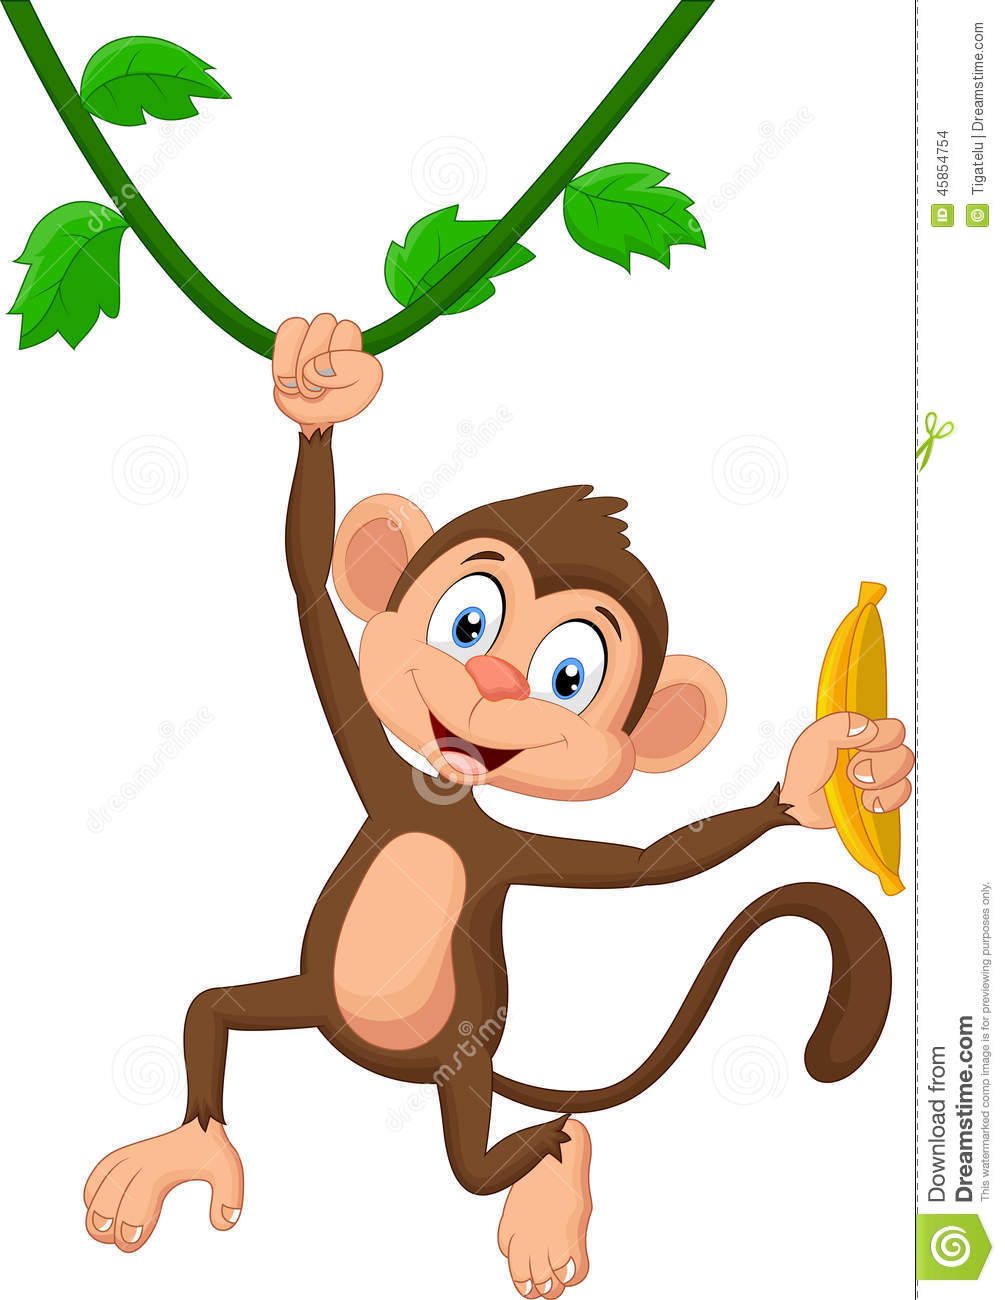 clipart monkey hanging from tree - photo #27